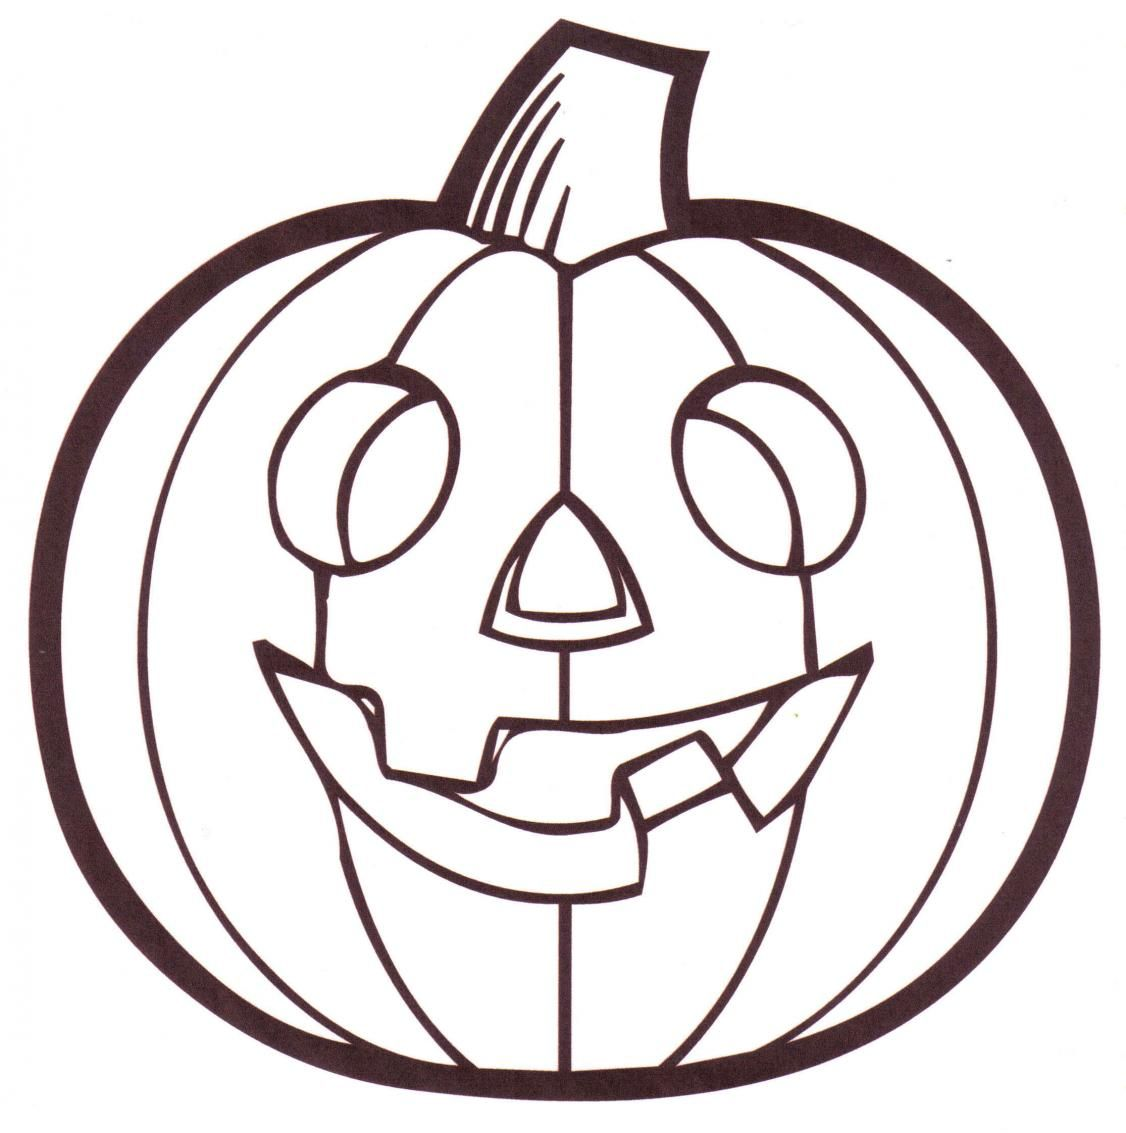 We Have Compiled A Set Of High Quality Pumpkin Coloring